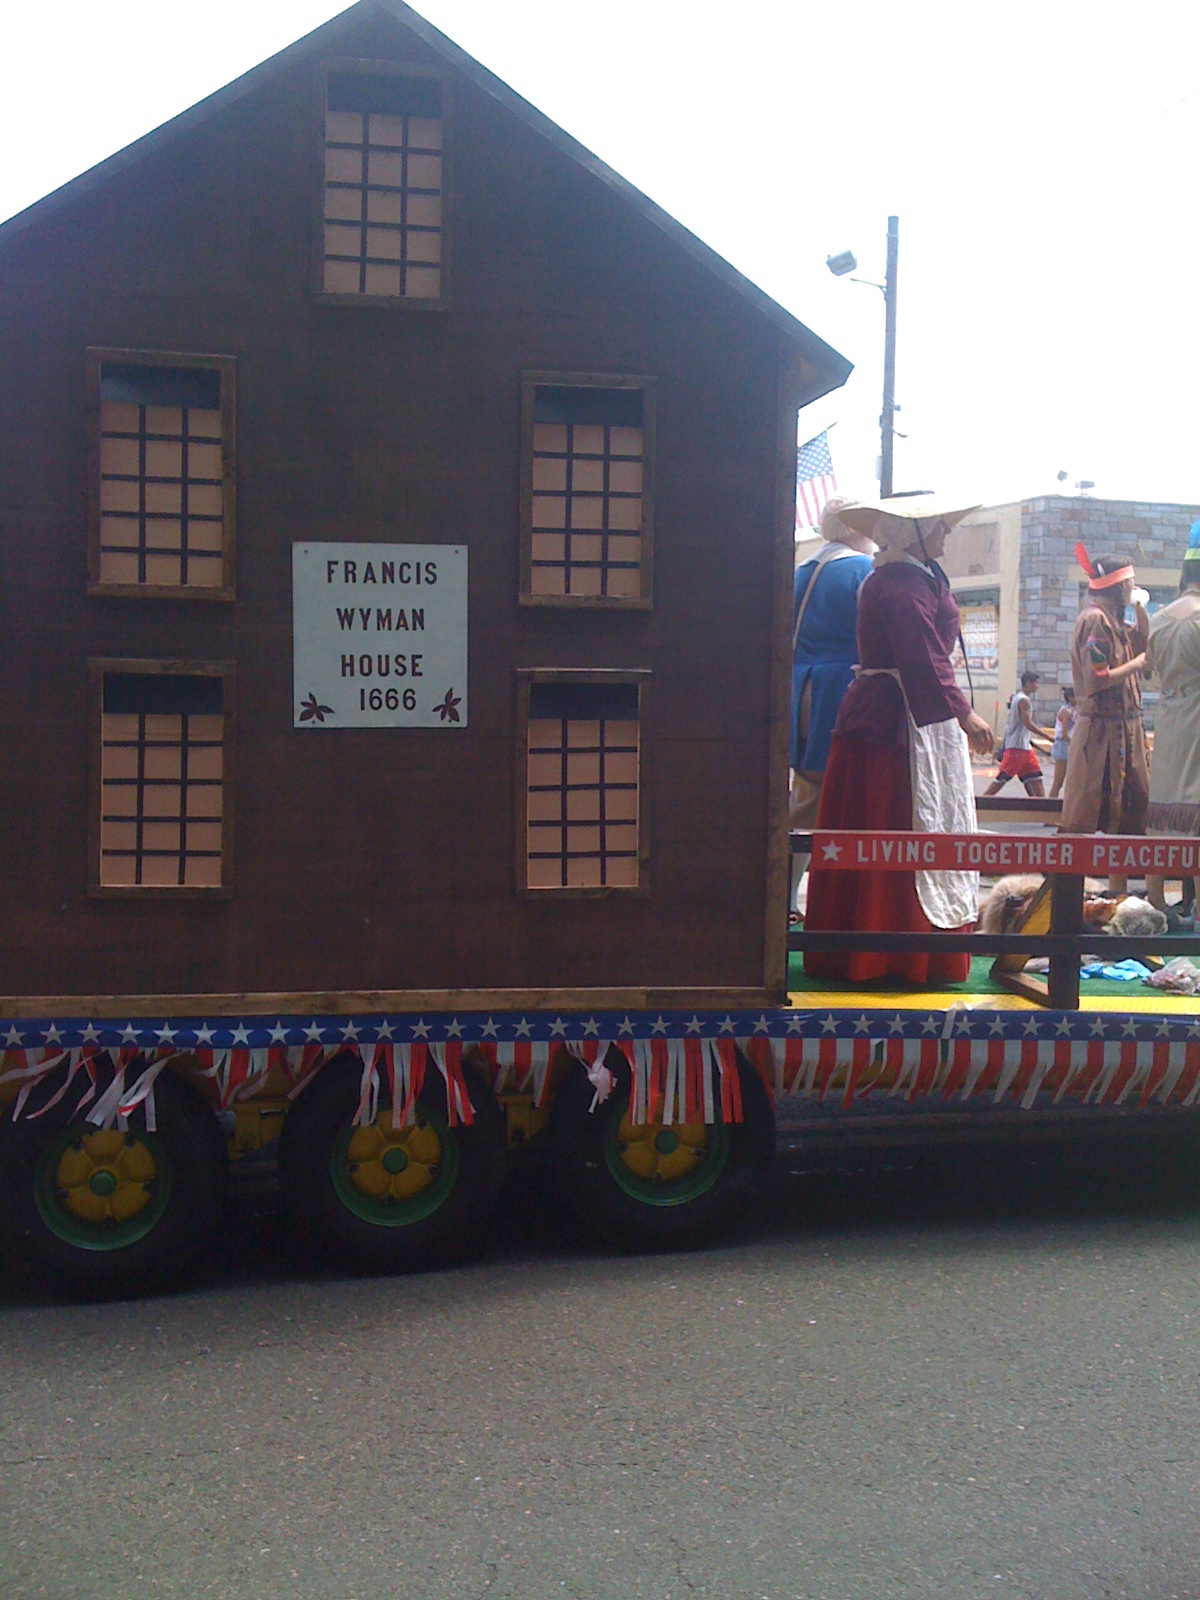 Our house continues down the parade route